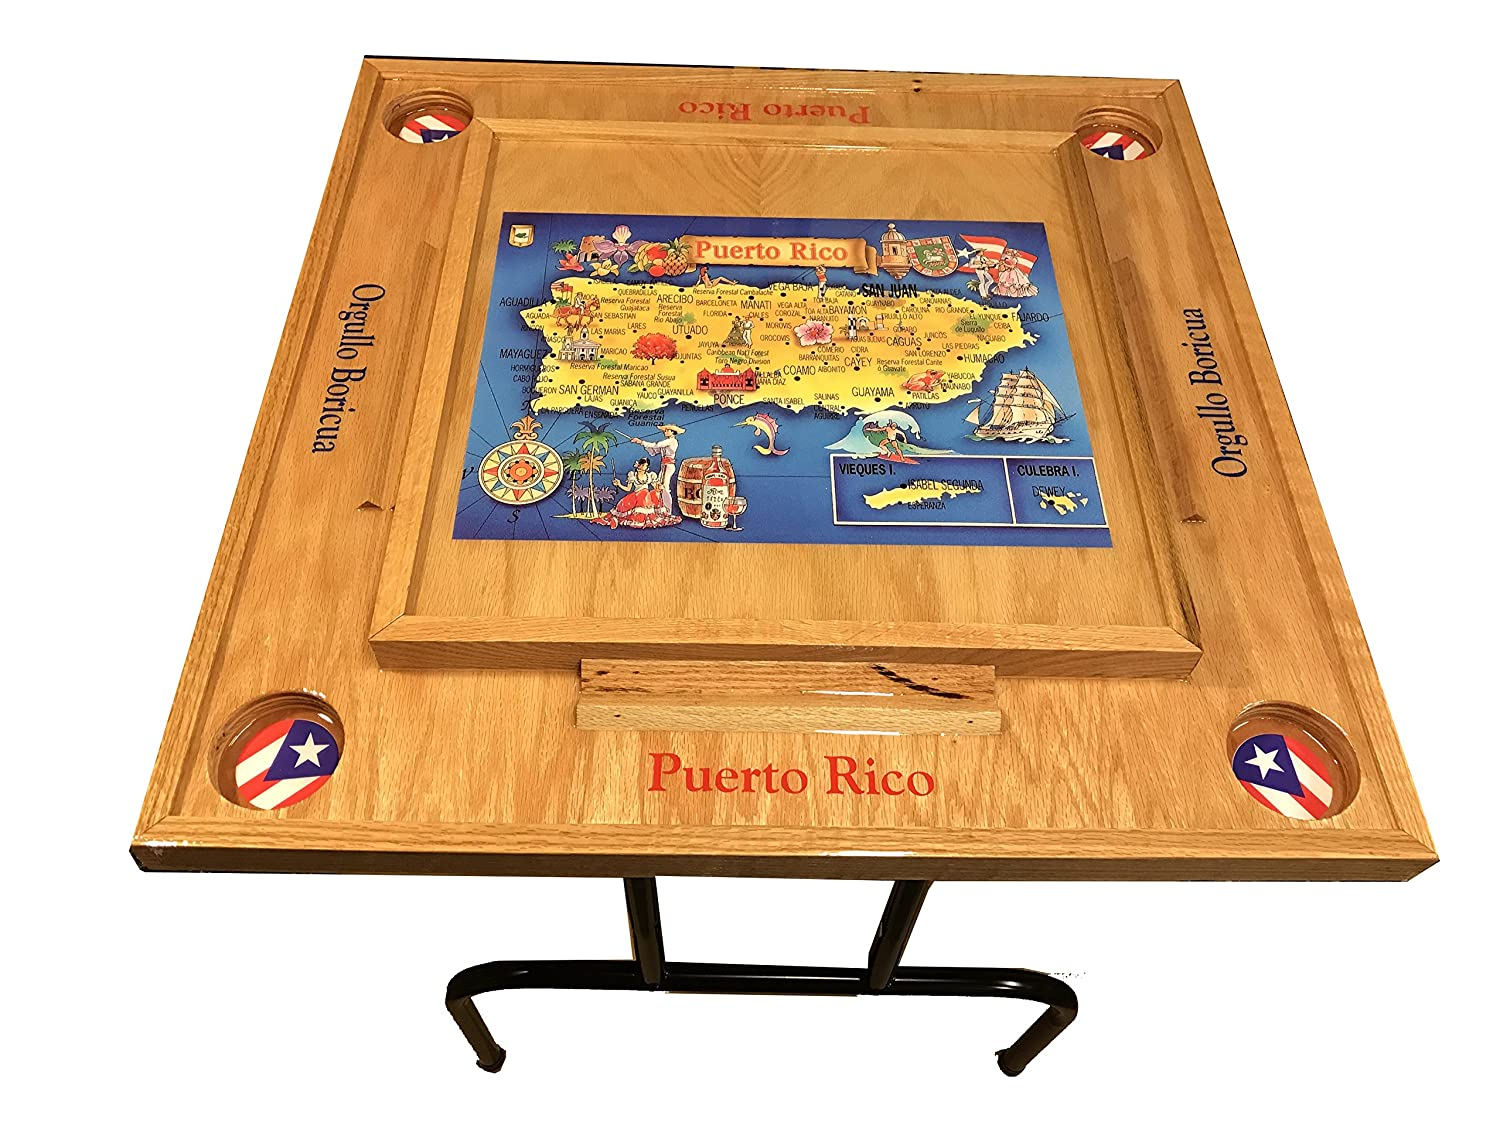 Puerto Rico Domino Table with the Map latinos R us